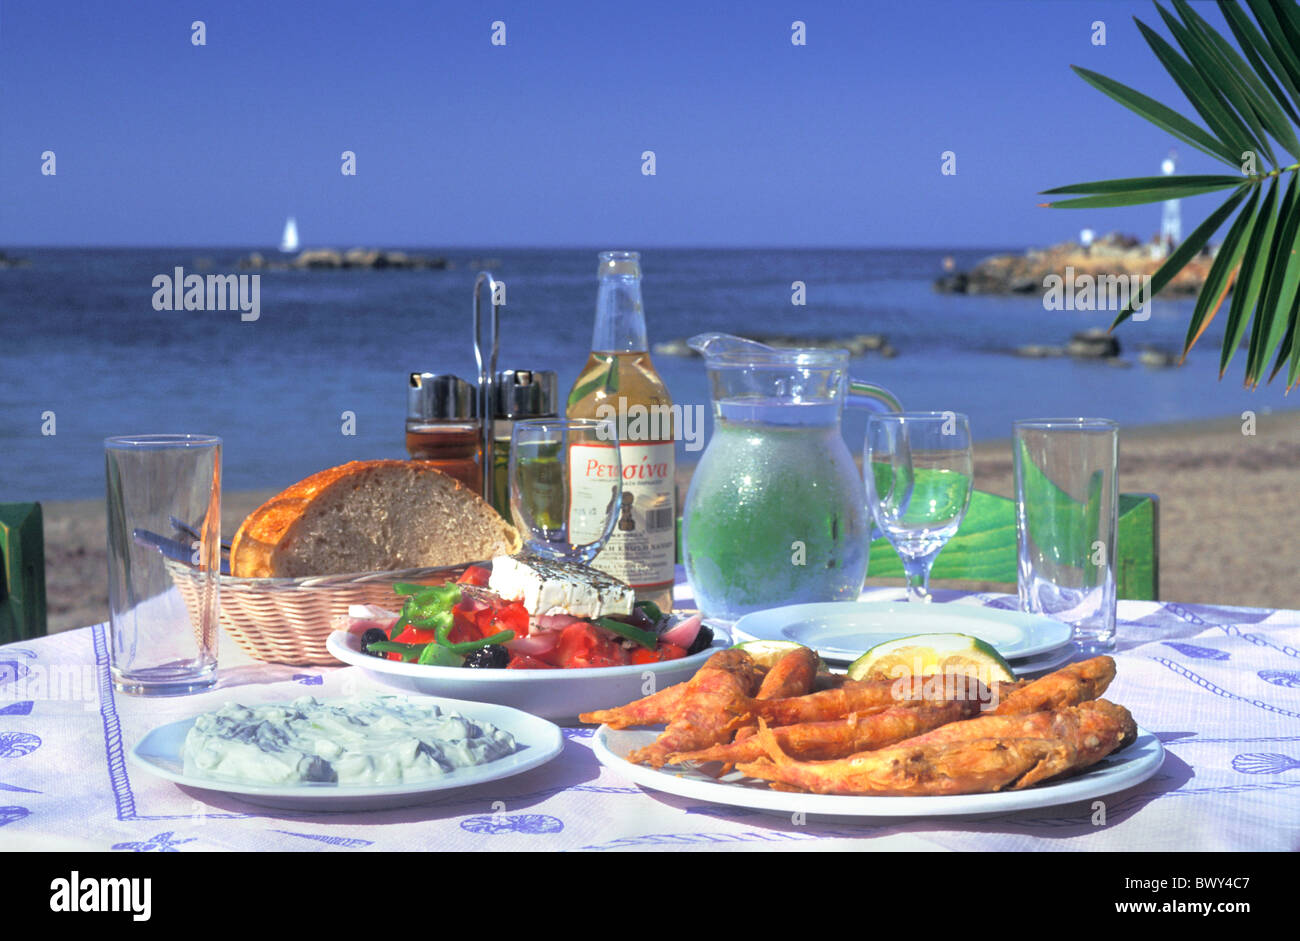 Bread cooking cuisine desk feta fish food greece europe for Apollon greek and european cuisine